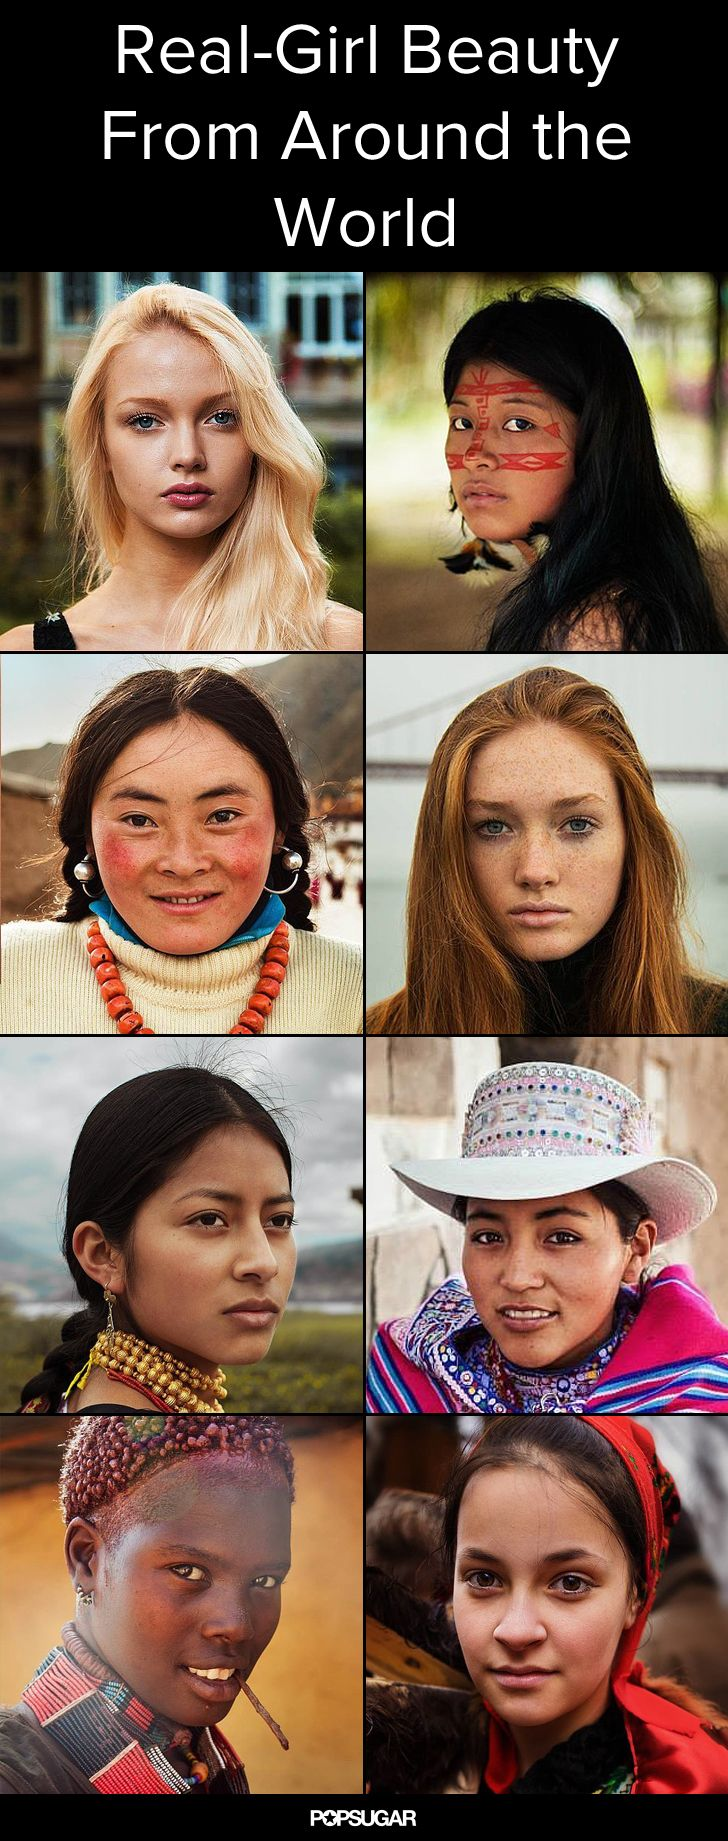 I just reacted to 1 Photographer Travels to 37 Countries to Document Female Beauty. Check it out!